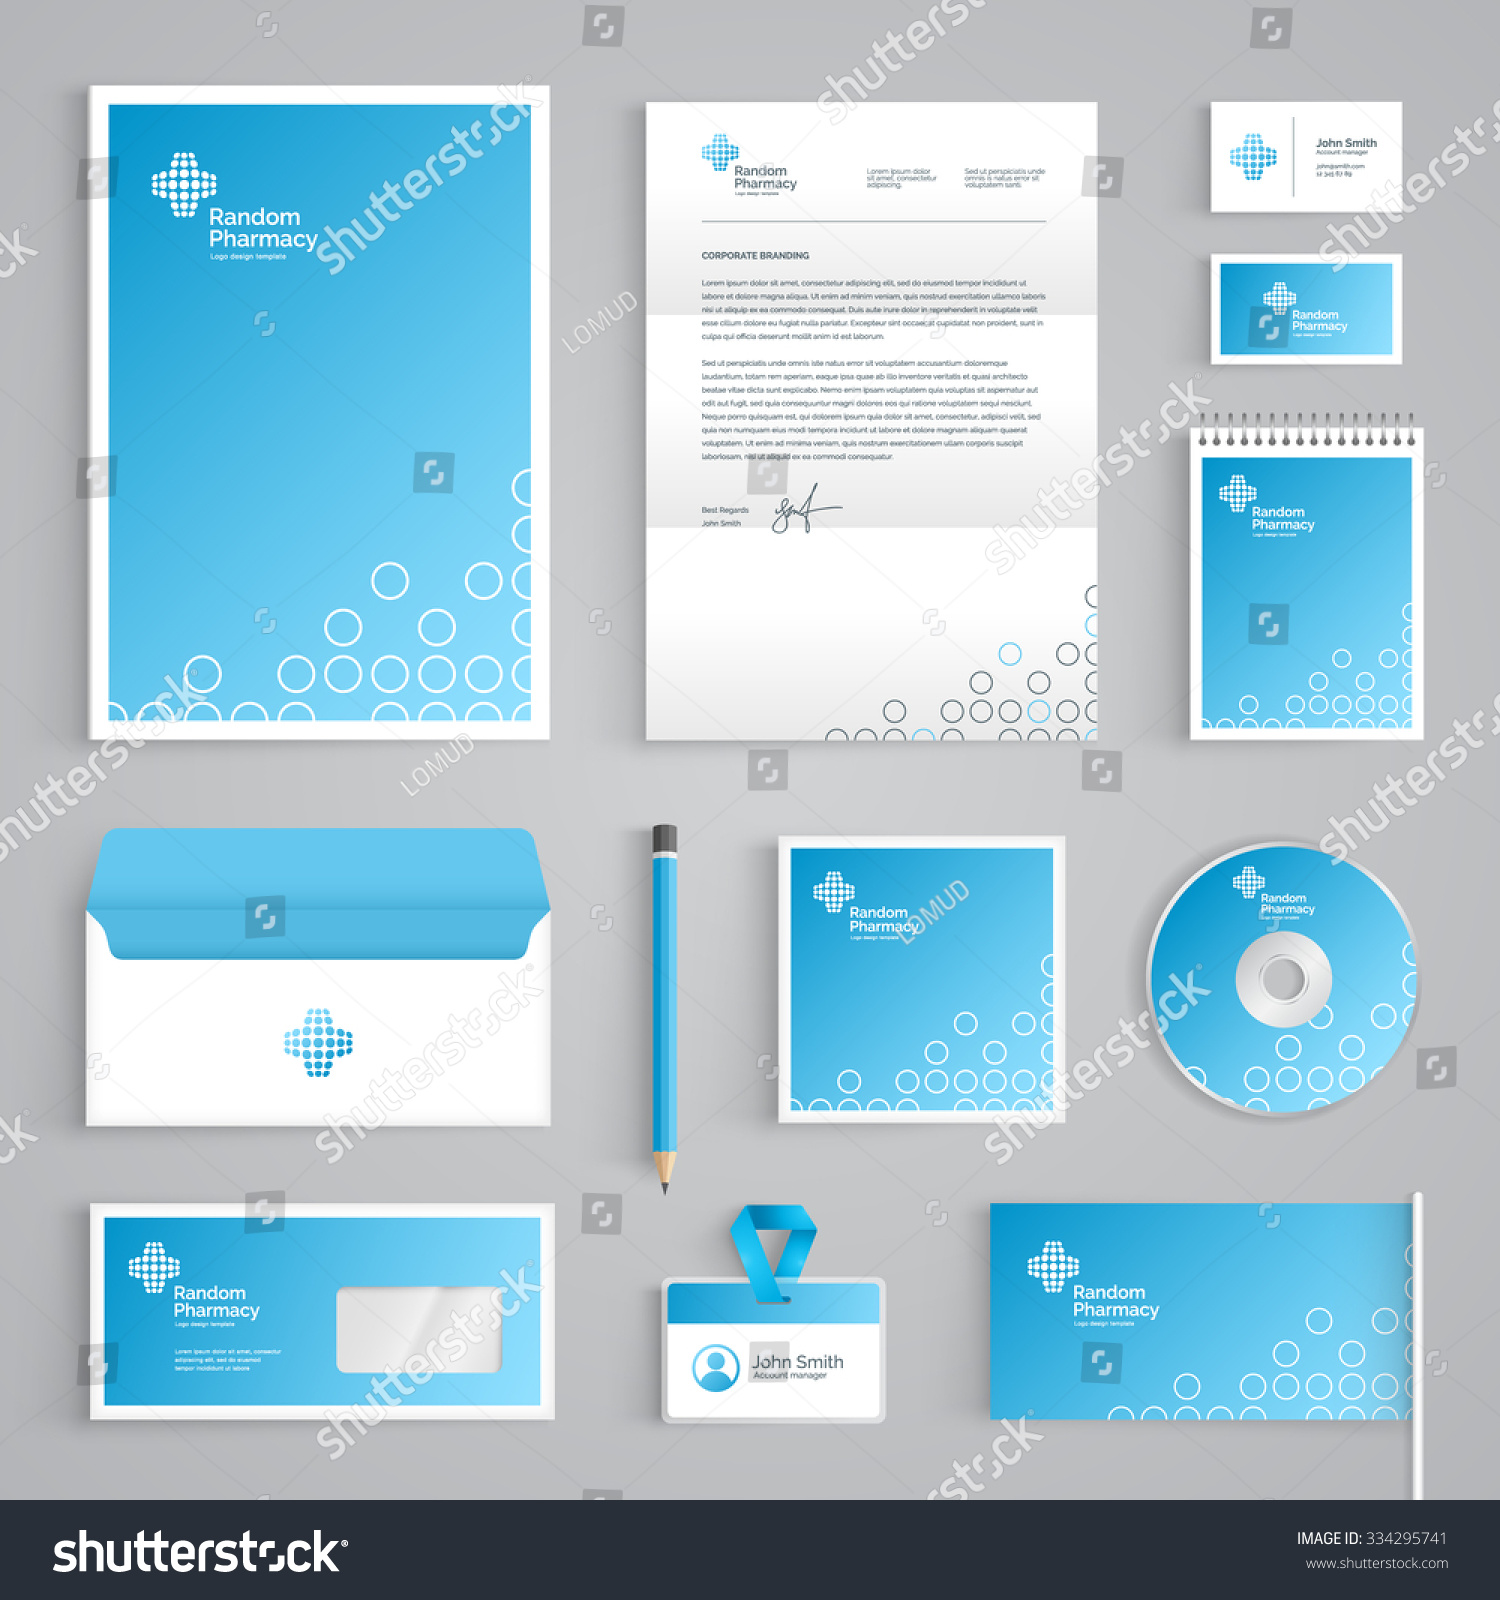 Blank Stationery And Corporate Identity Template Consist: Corporate Identity Medical Branding Template Abstract